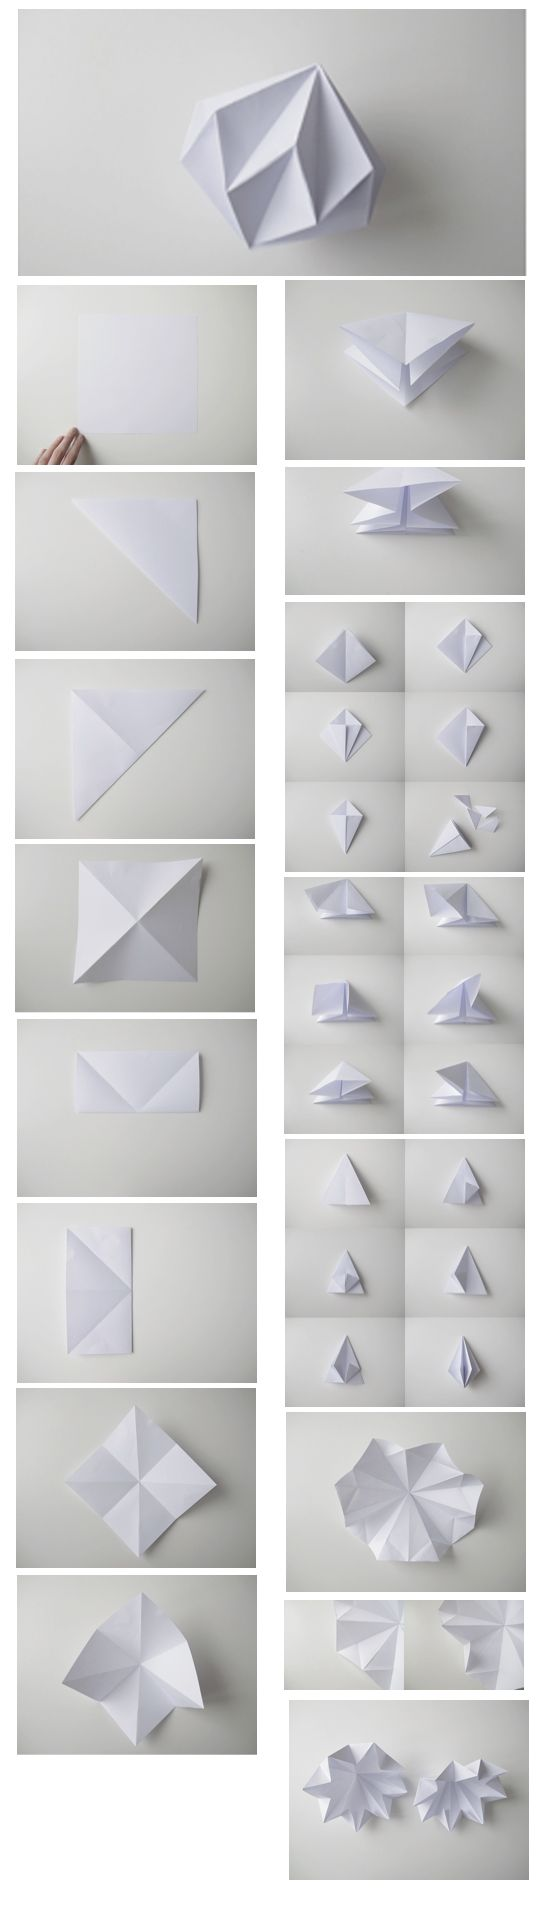 DIY PAPER DIAMONDS